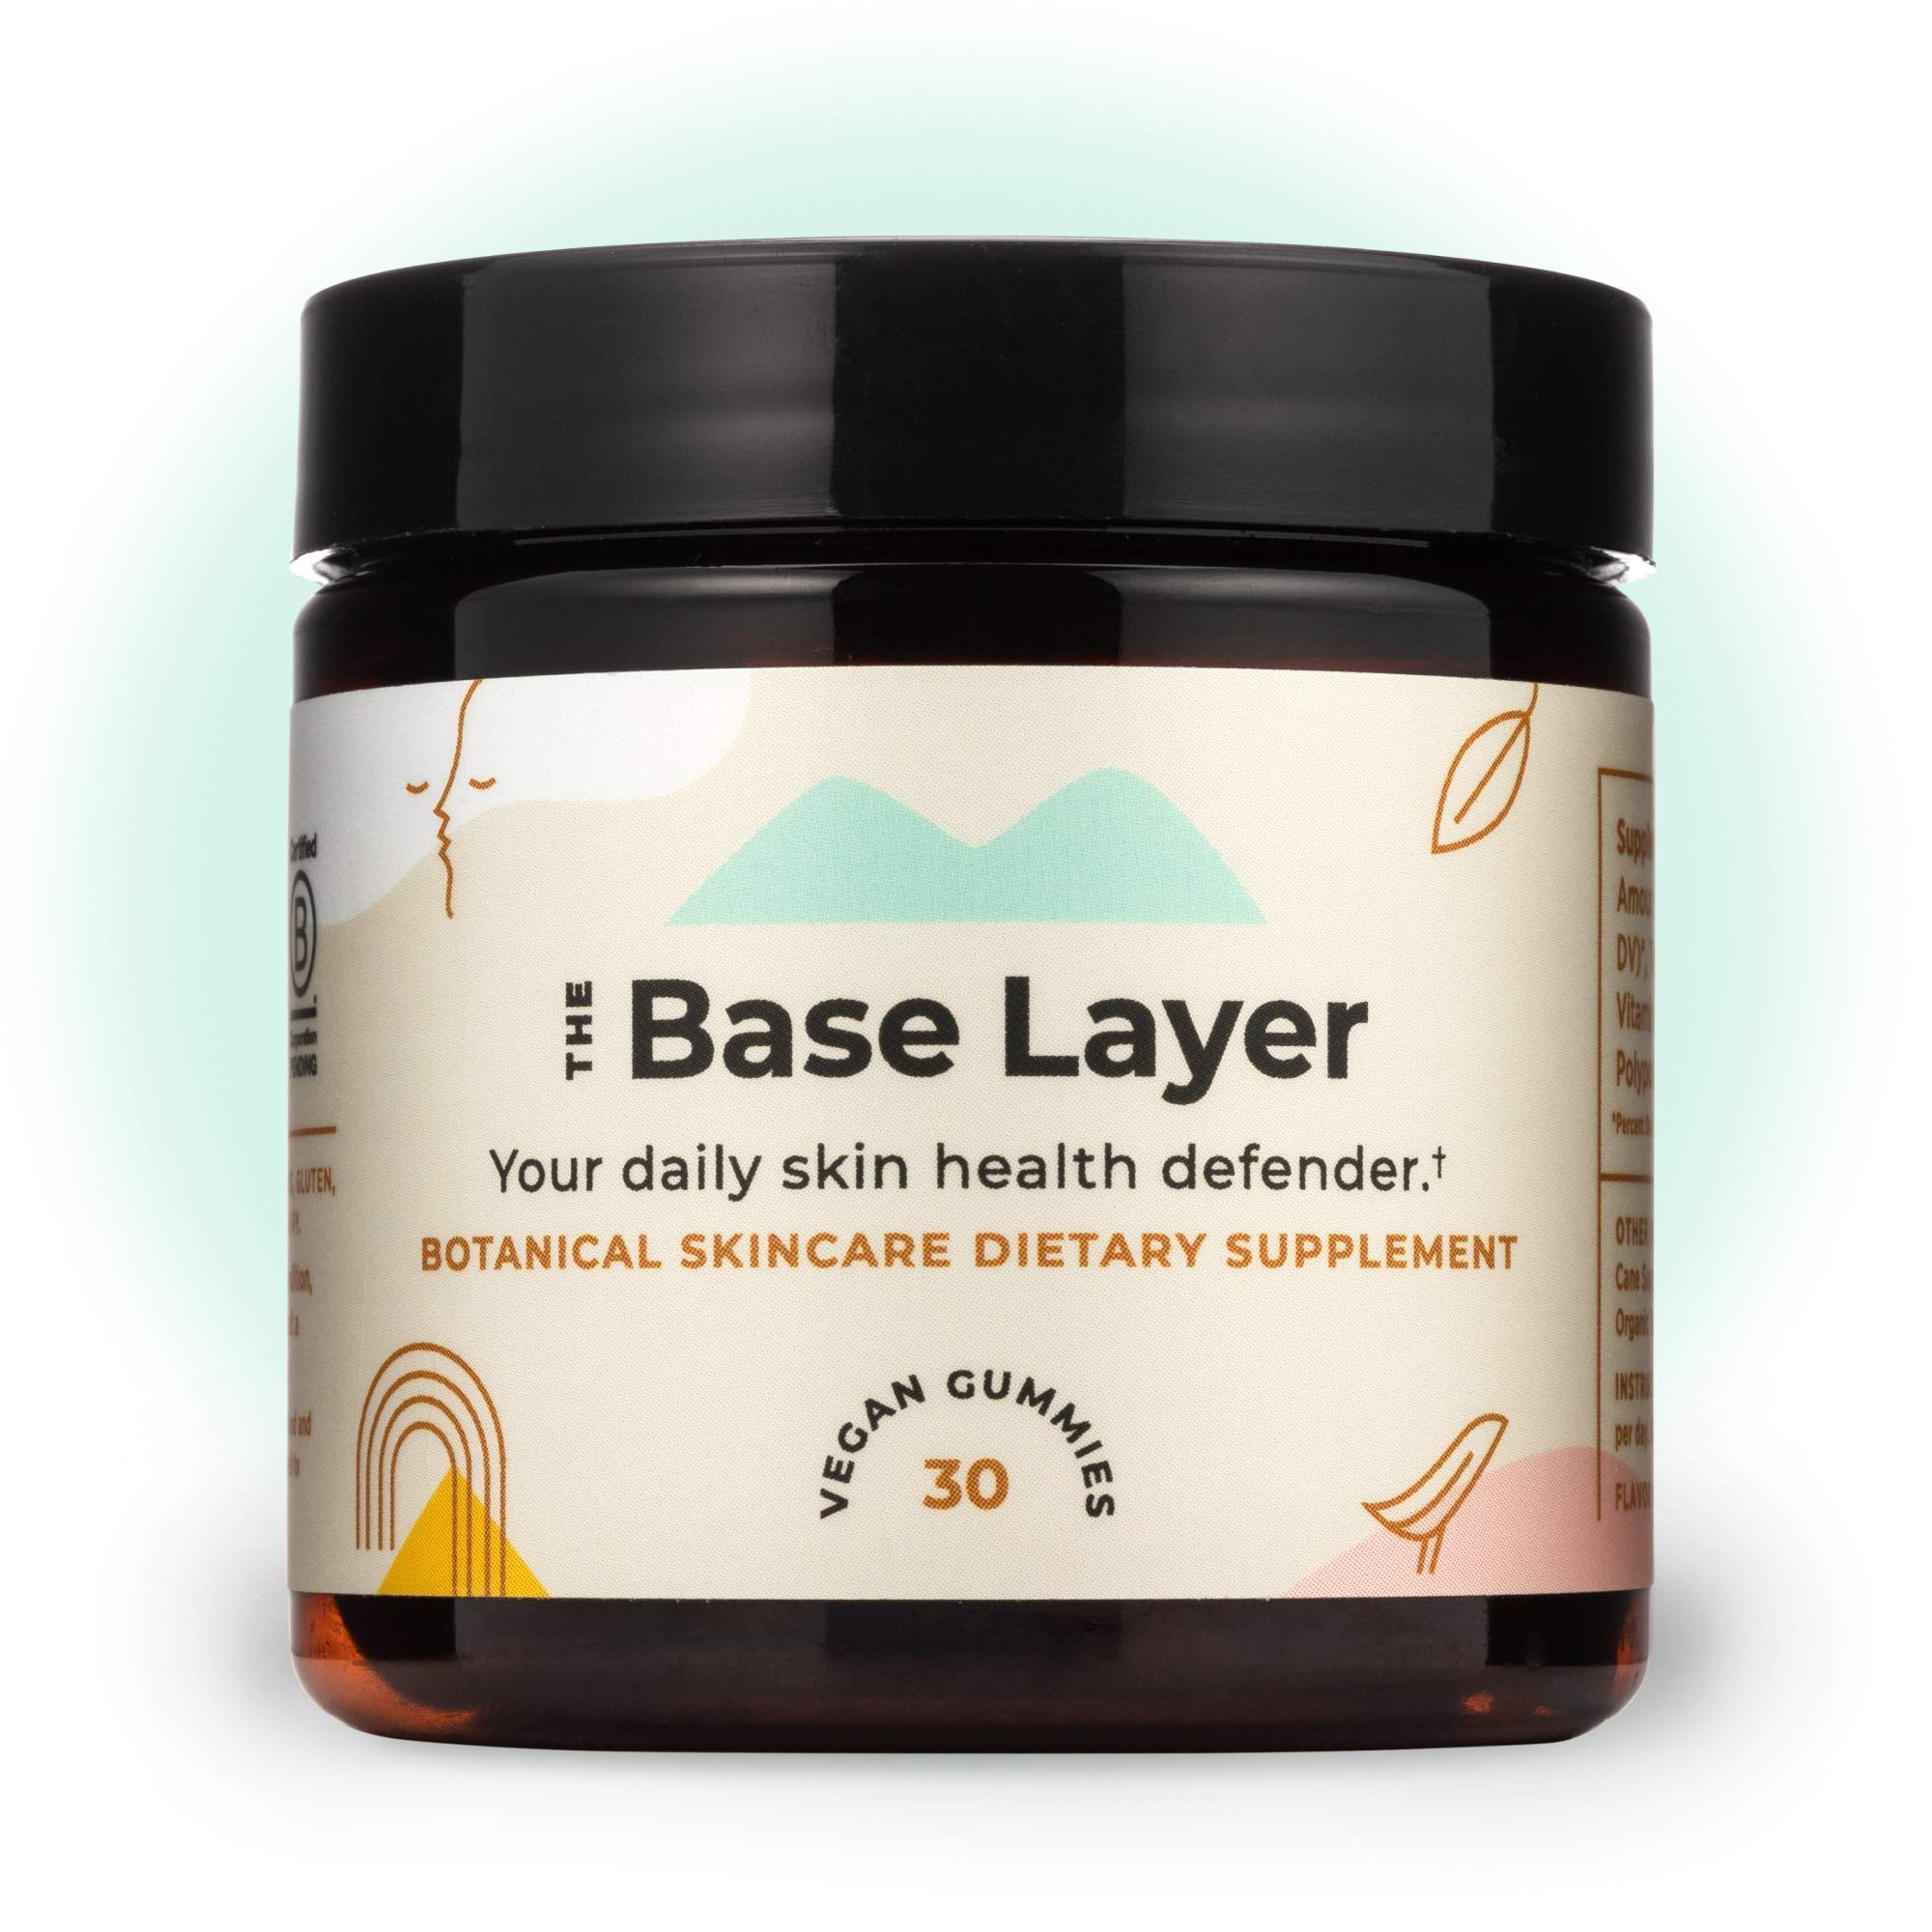 Sundaily - The Base Layer Chewable Skincare Gummy - Combat Free Radical Damage - Support Skin's Collagen - Enhance Smooth Texture - Polypodium Leucotomos Extract - Vitamin D3-30 Daily Vegan Gummies by Sundaily